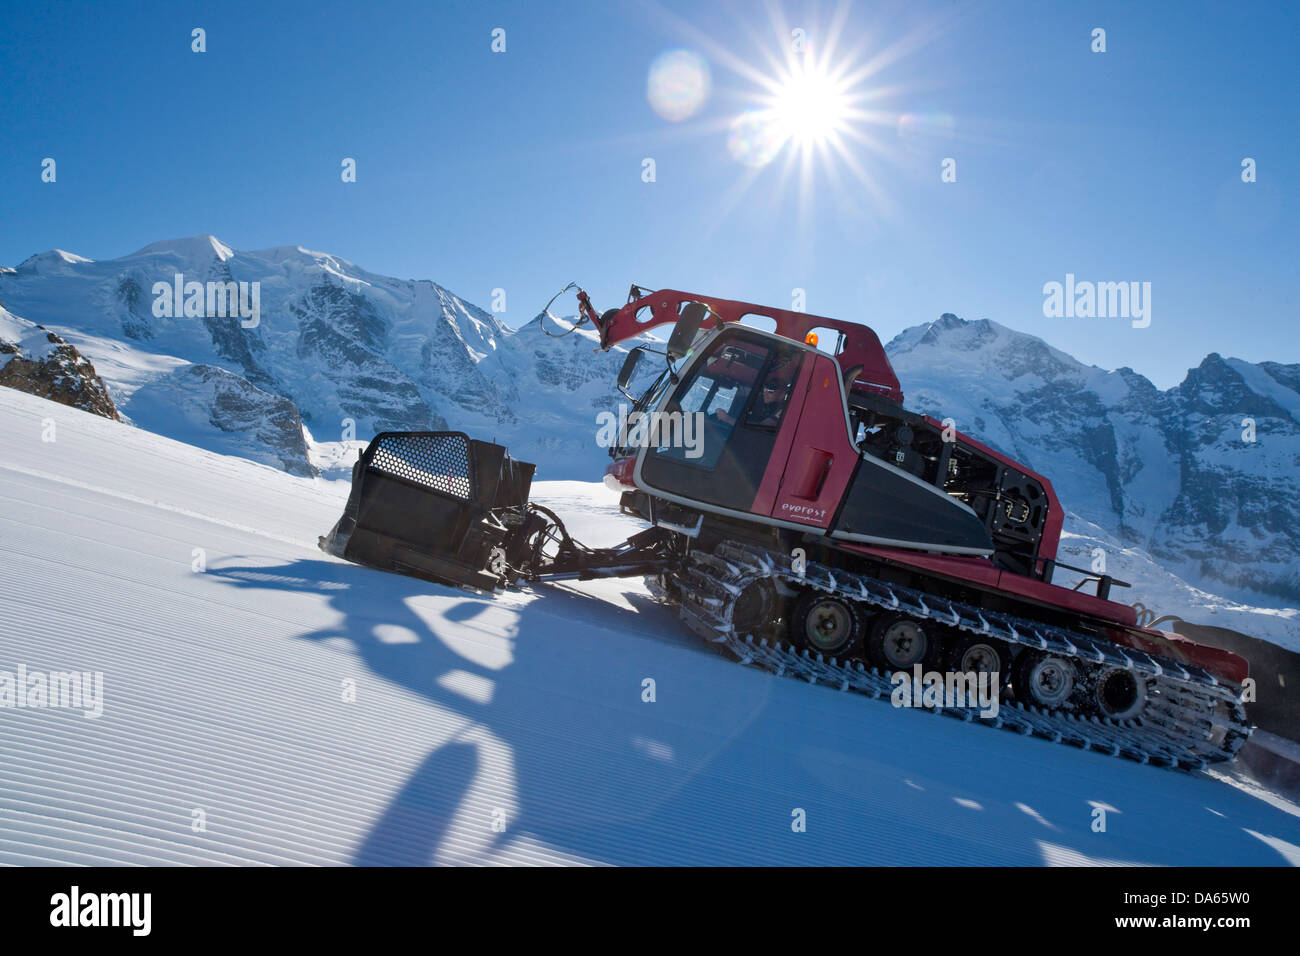 piste, vehicle, snow goomer, Diavolezza, view, Bernina, winter sports, canton, GR, Graubünden, Grisons, Engadin, - Stock Image